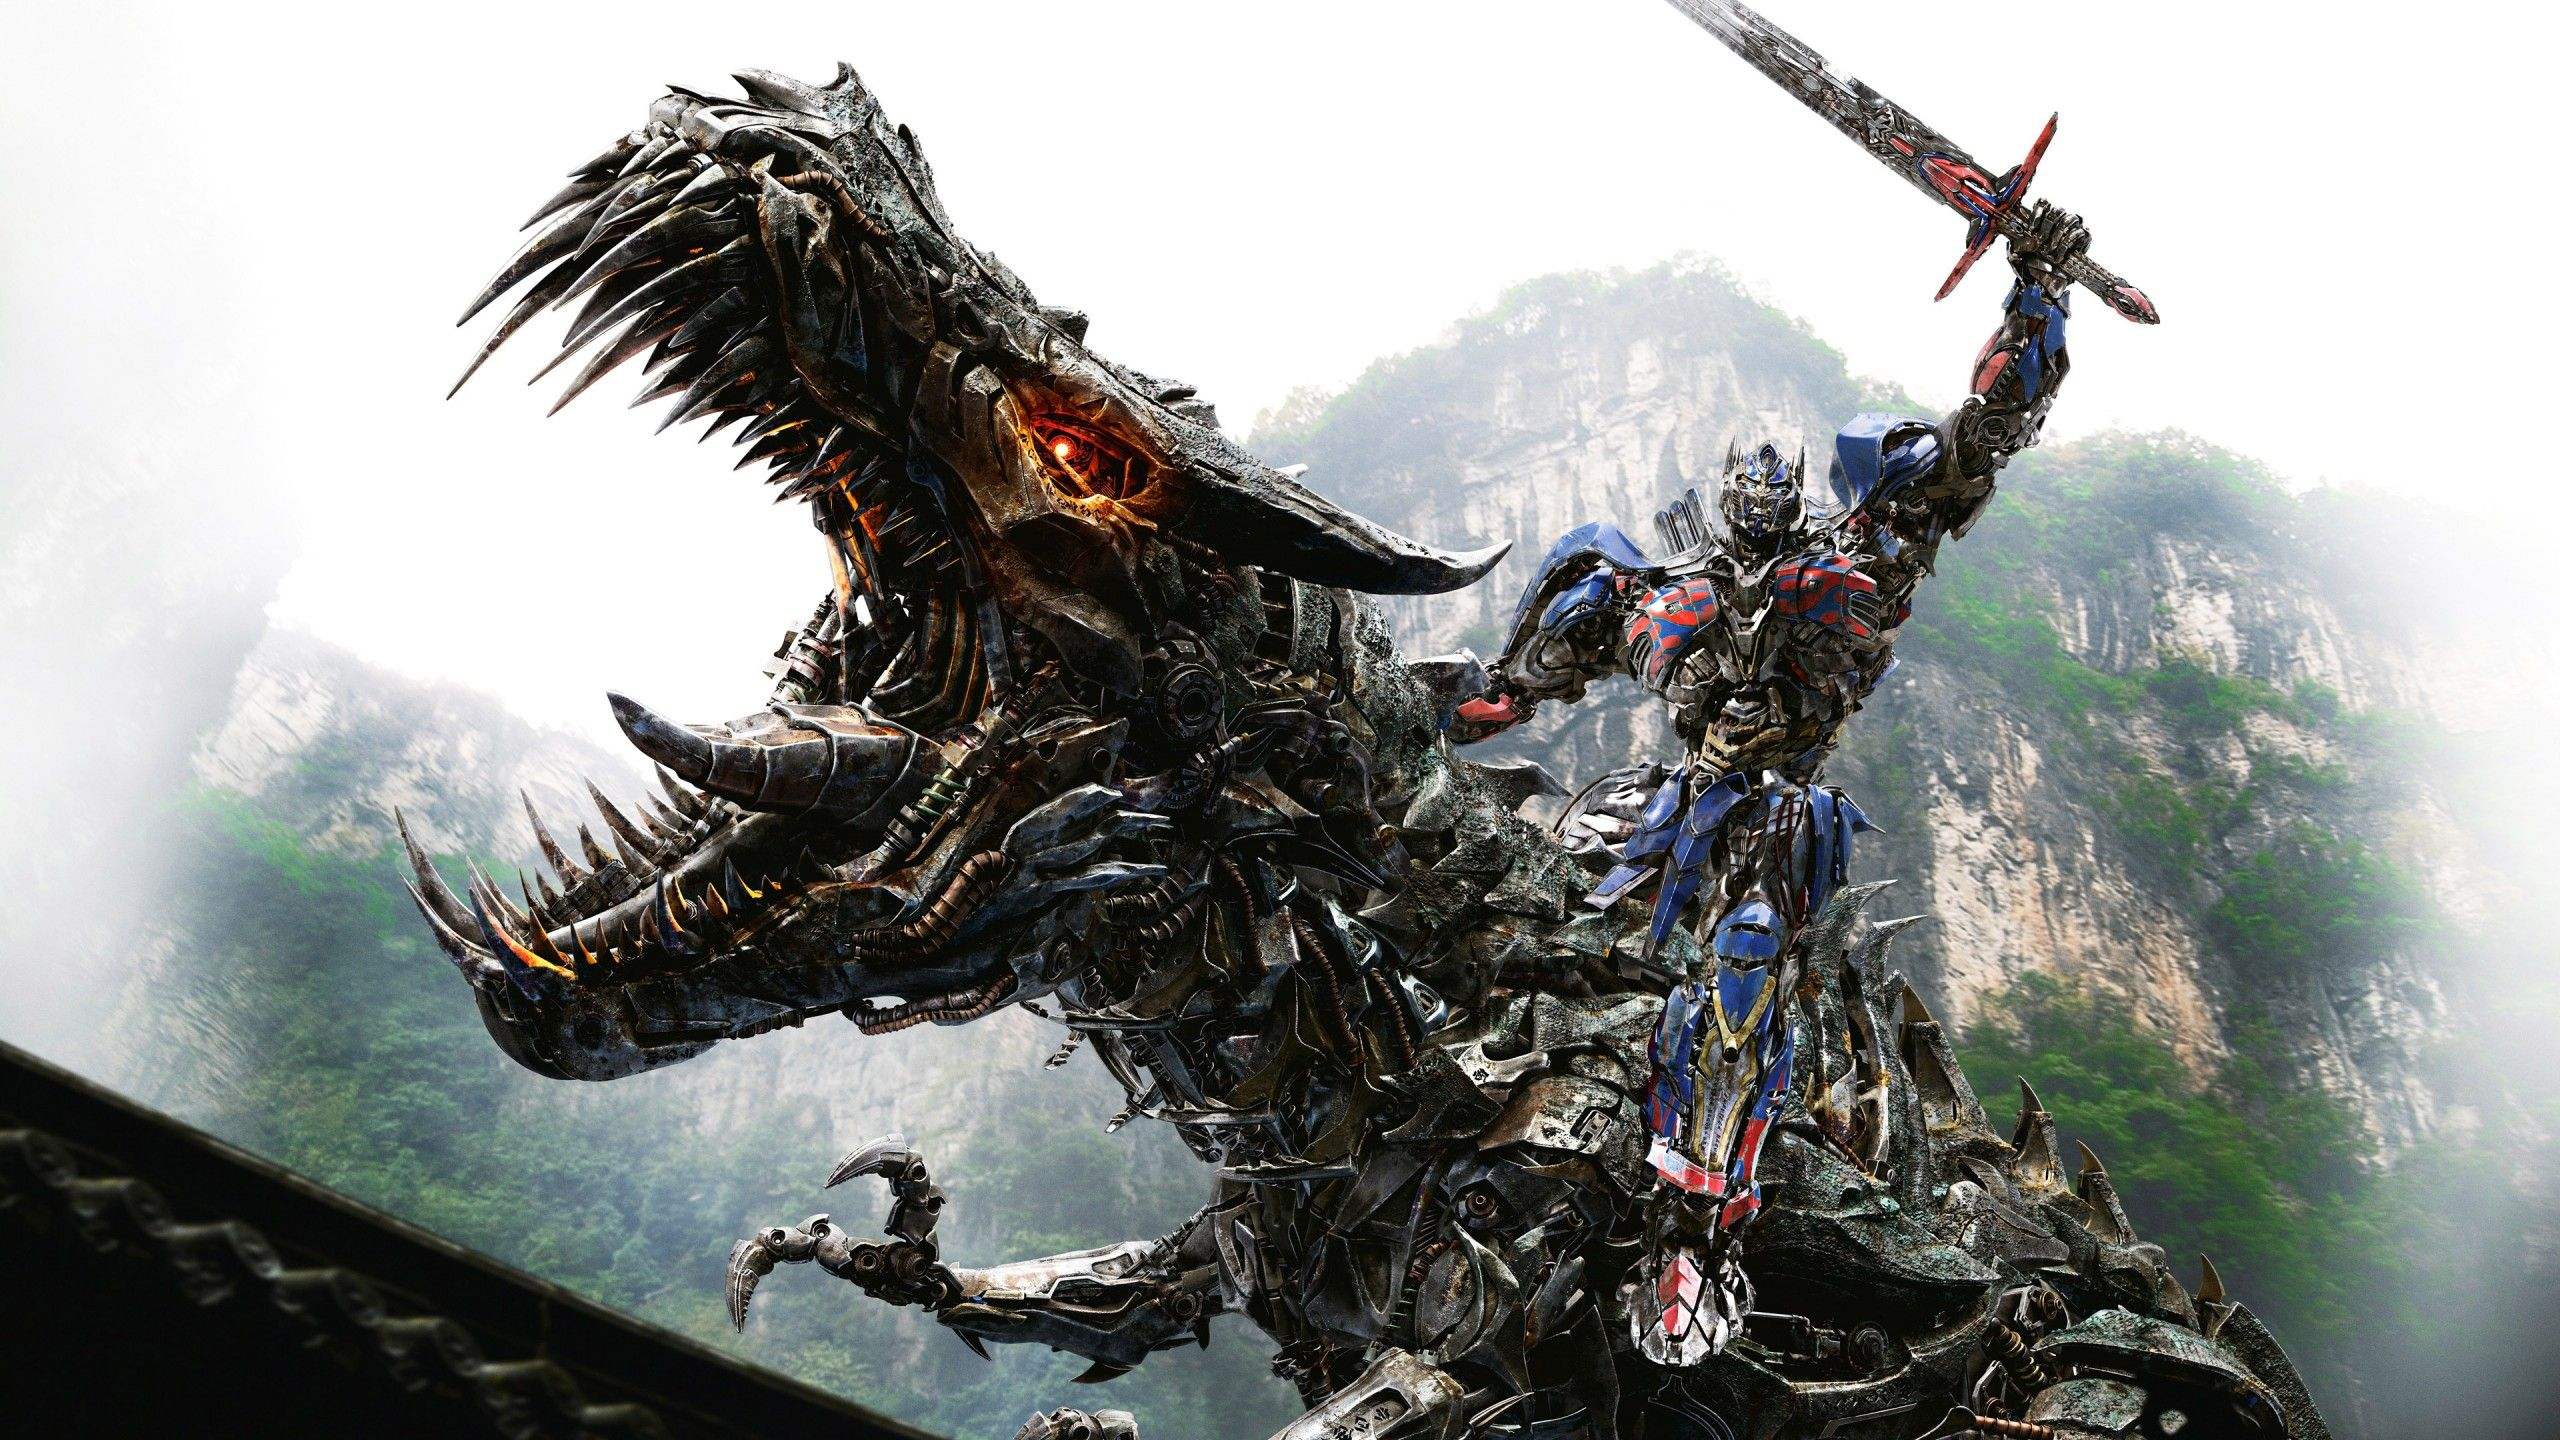 'Transformers: Age of Extinction' Hits Highest-Grossing Debut of 2014 With $100 Million